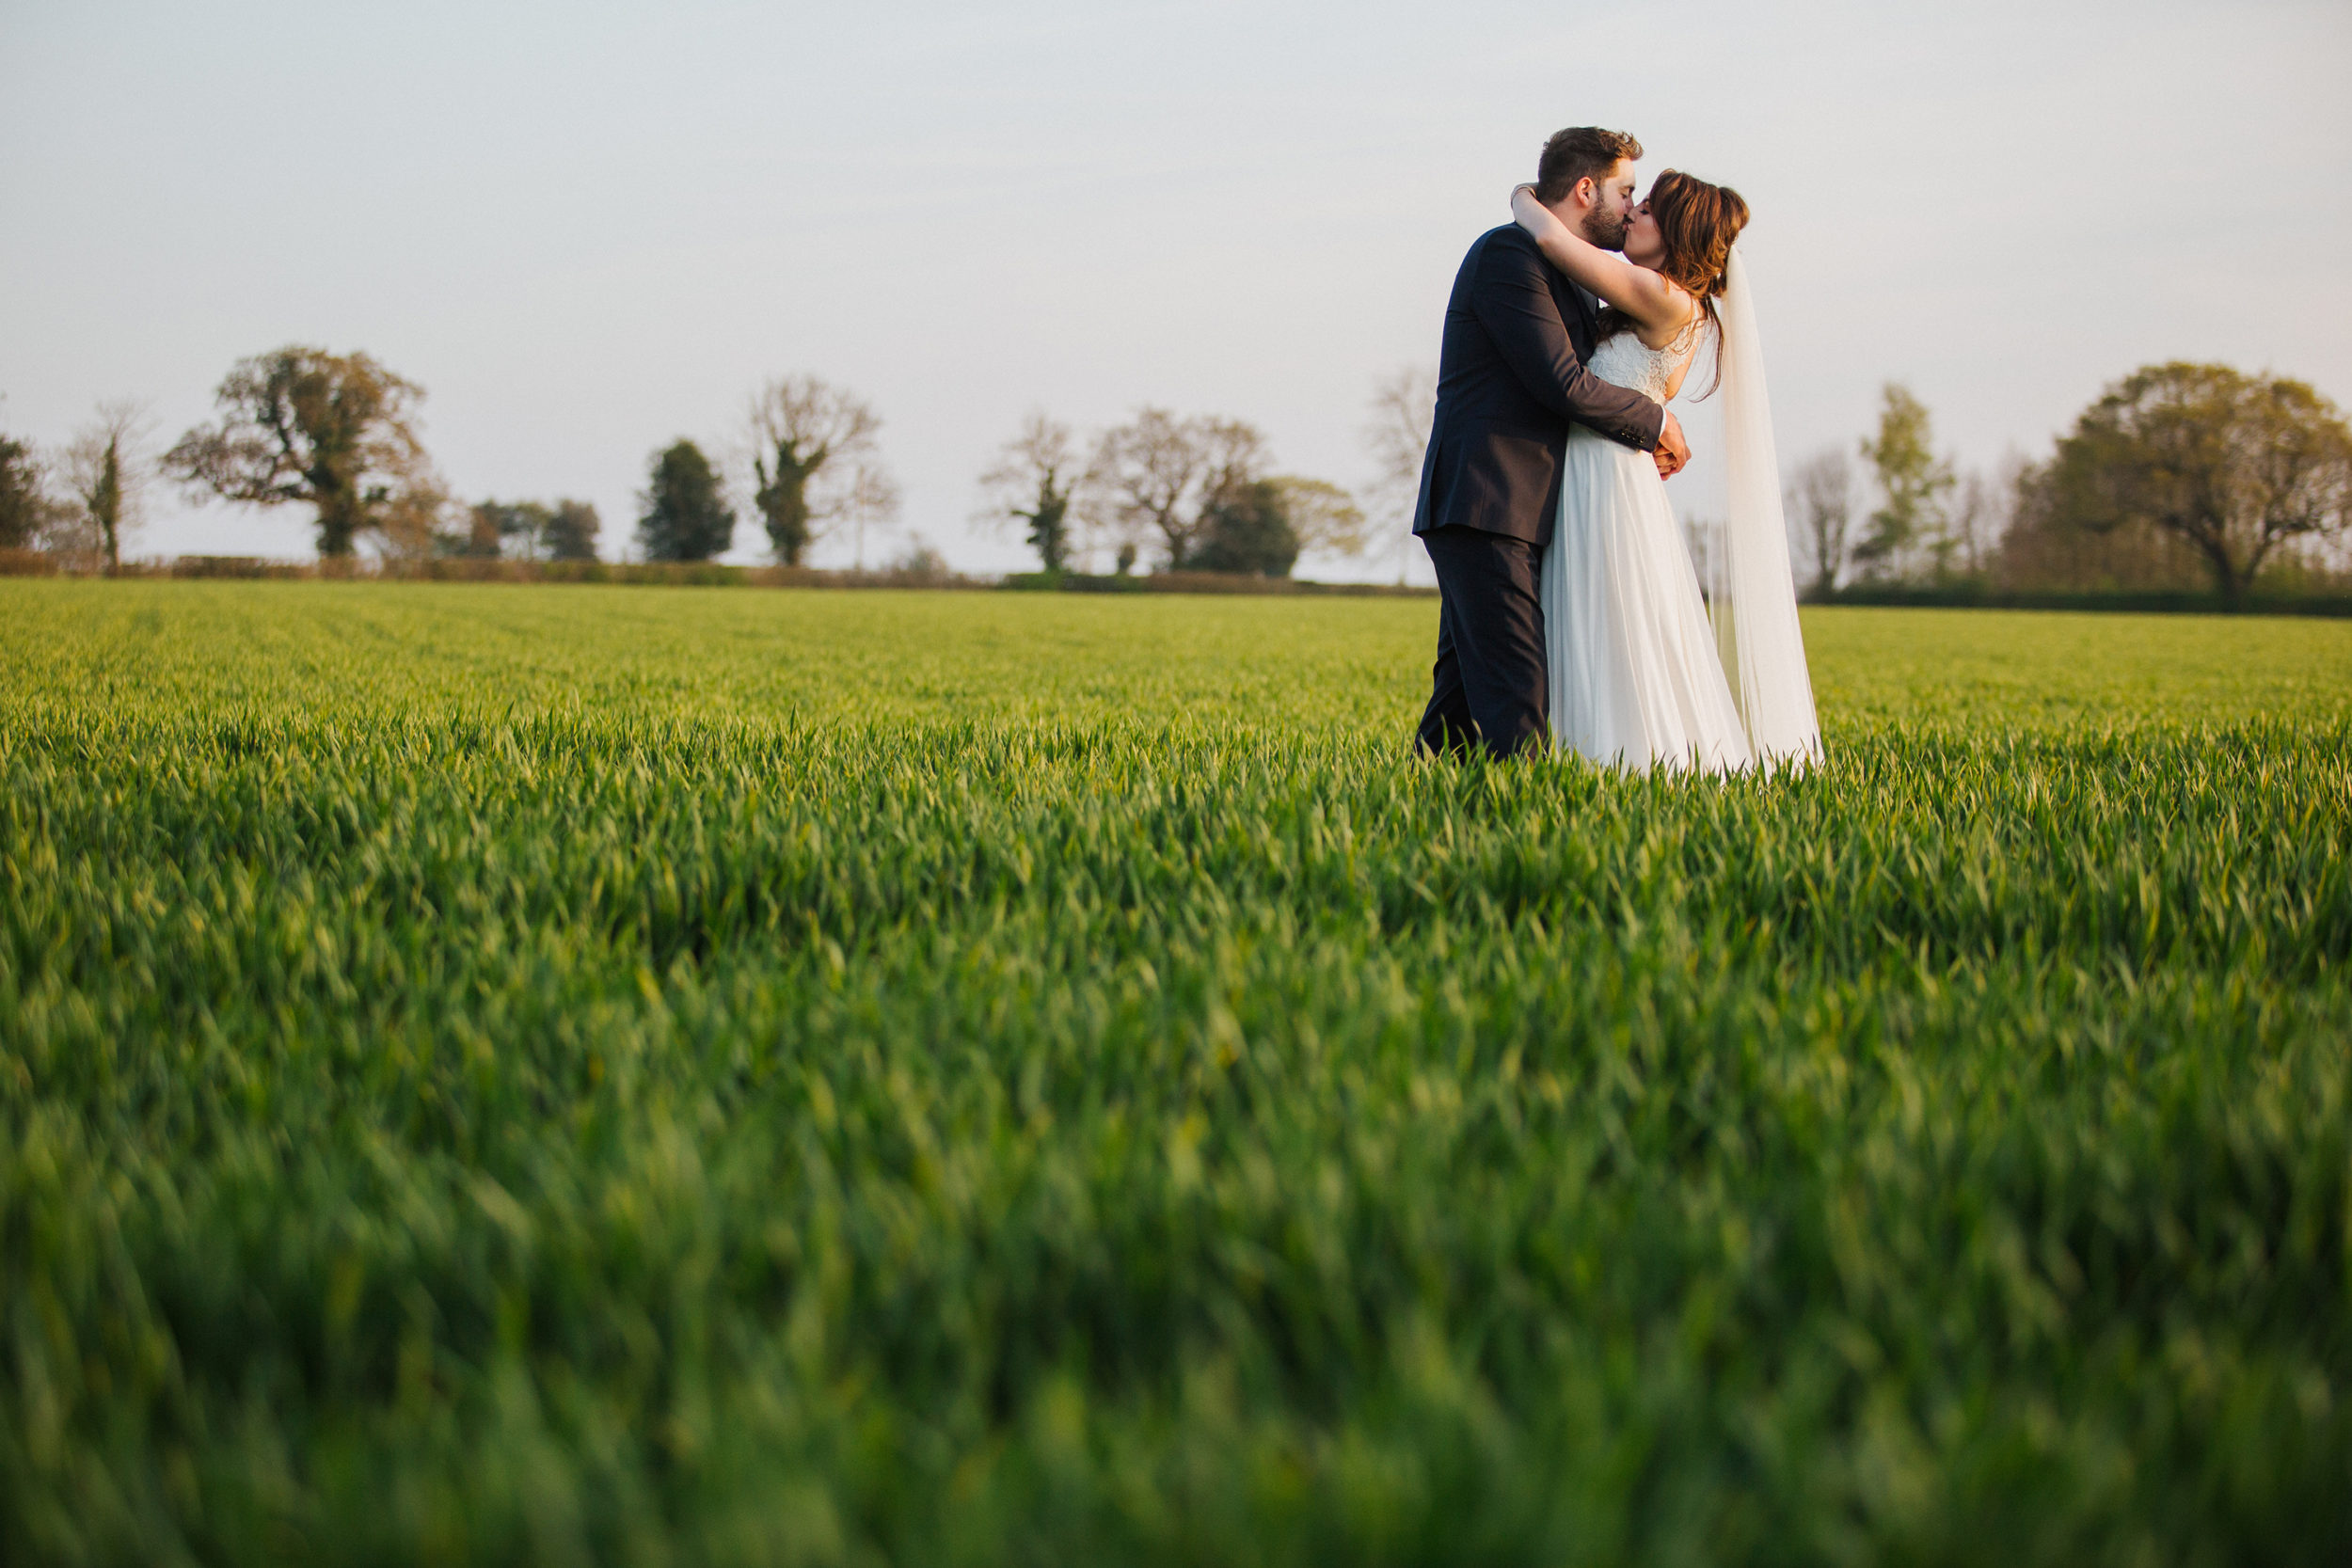 Bride and Groom share a kiss at sunset at wedding venue The Normans in York